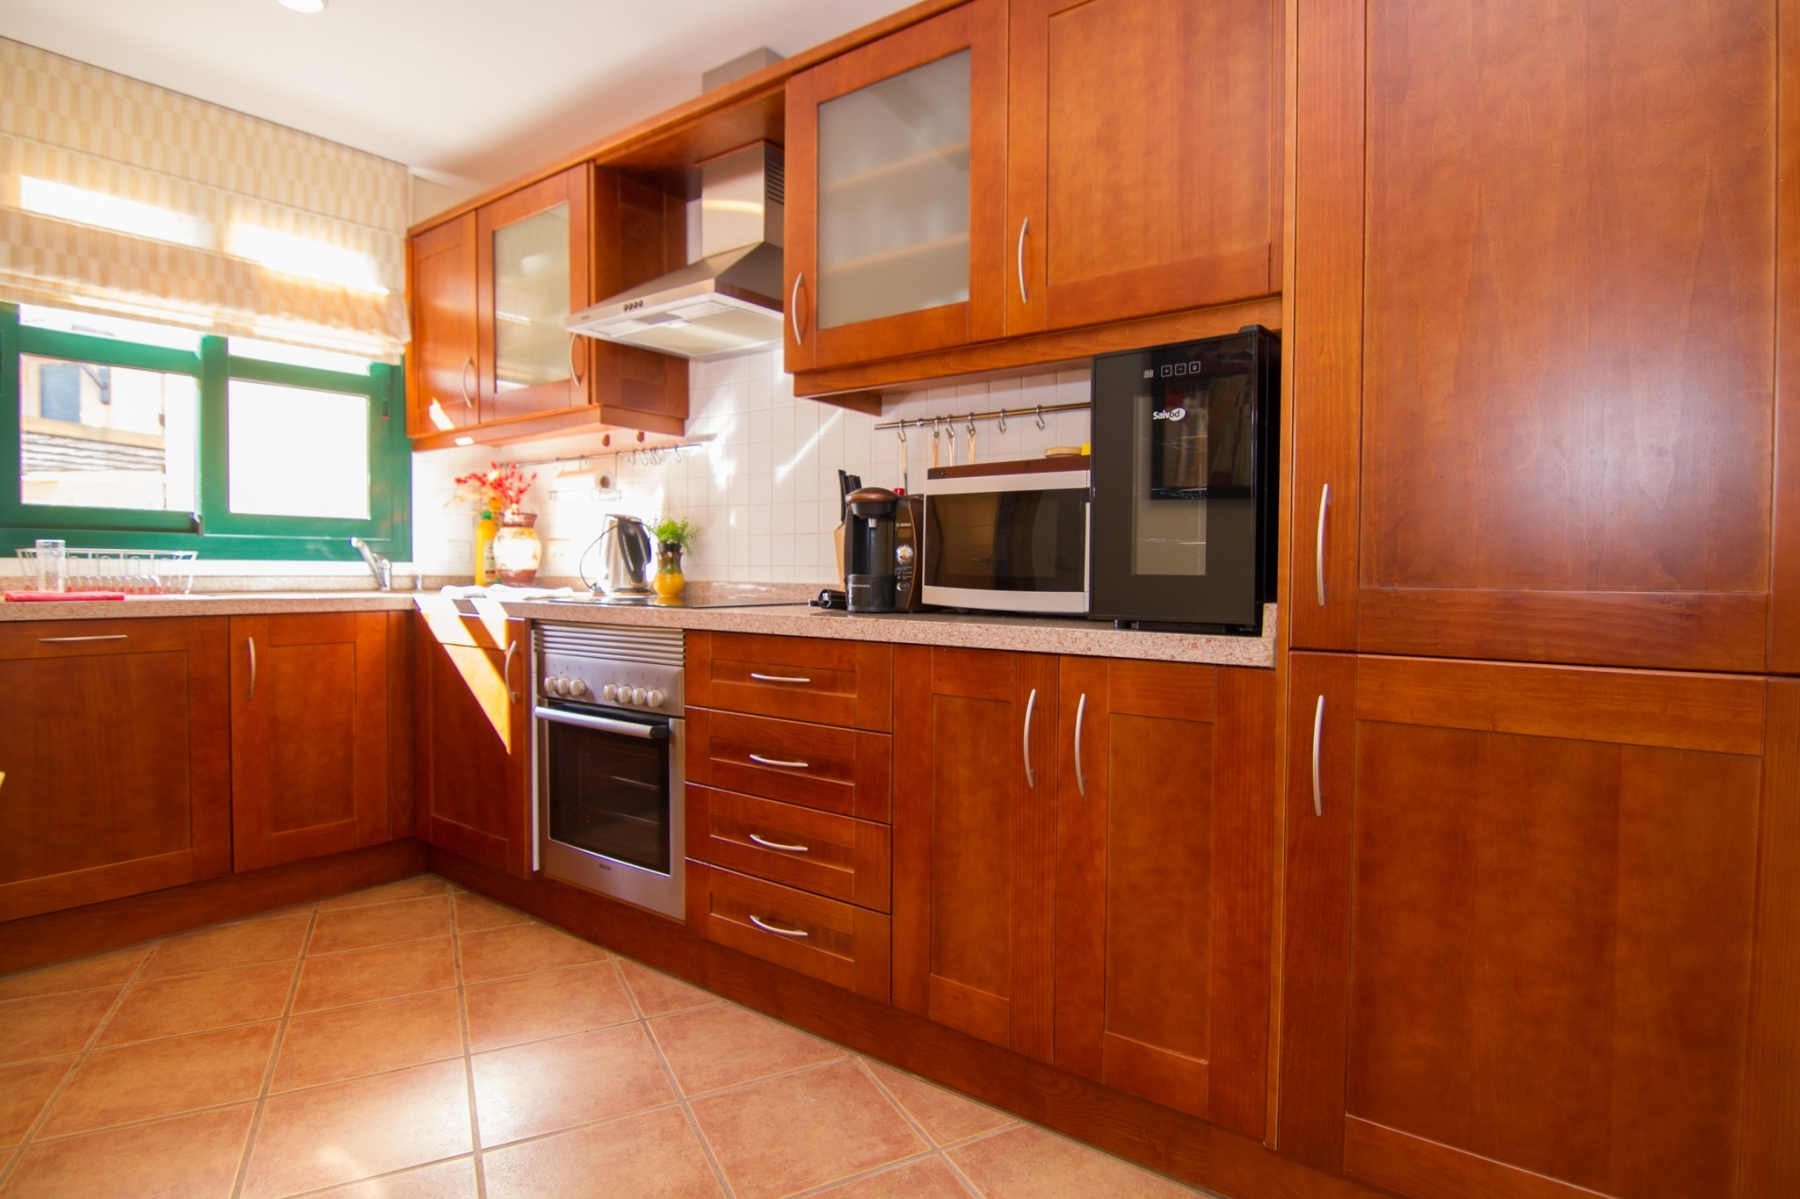 Properties for Sale in Tenerife, Canary Islands, Spain | SylkWayStar Real Estate. Luxury 3 bedrooms townhouse on the first line - San Blas . Image-22464